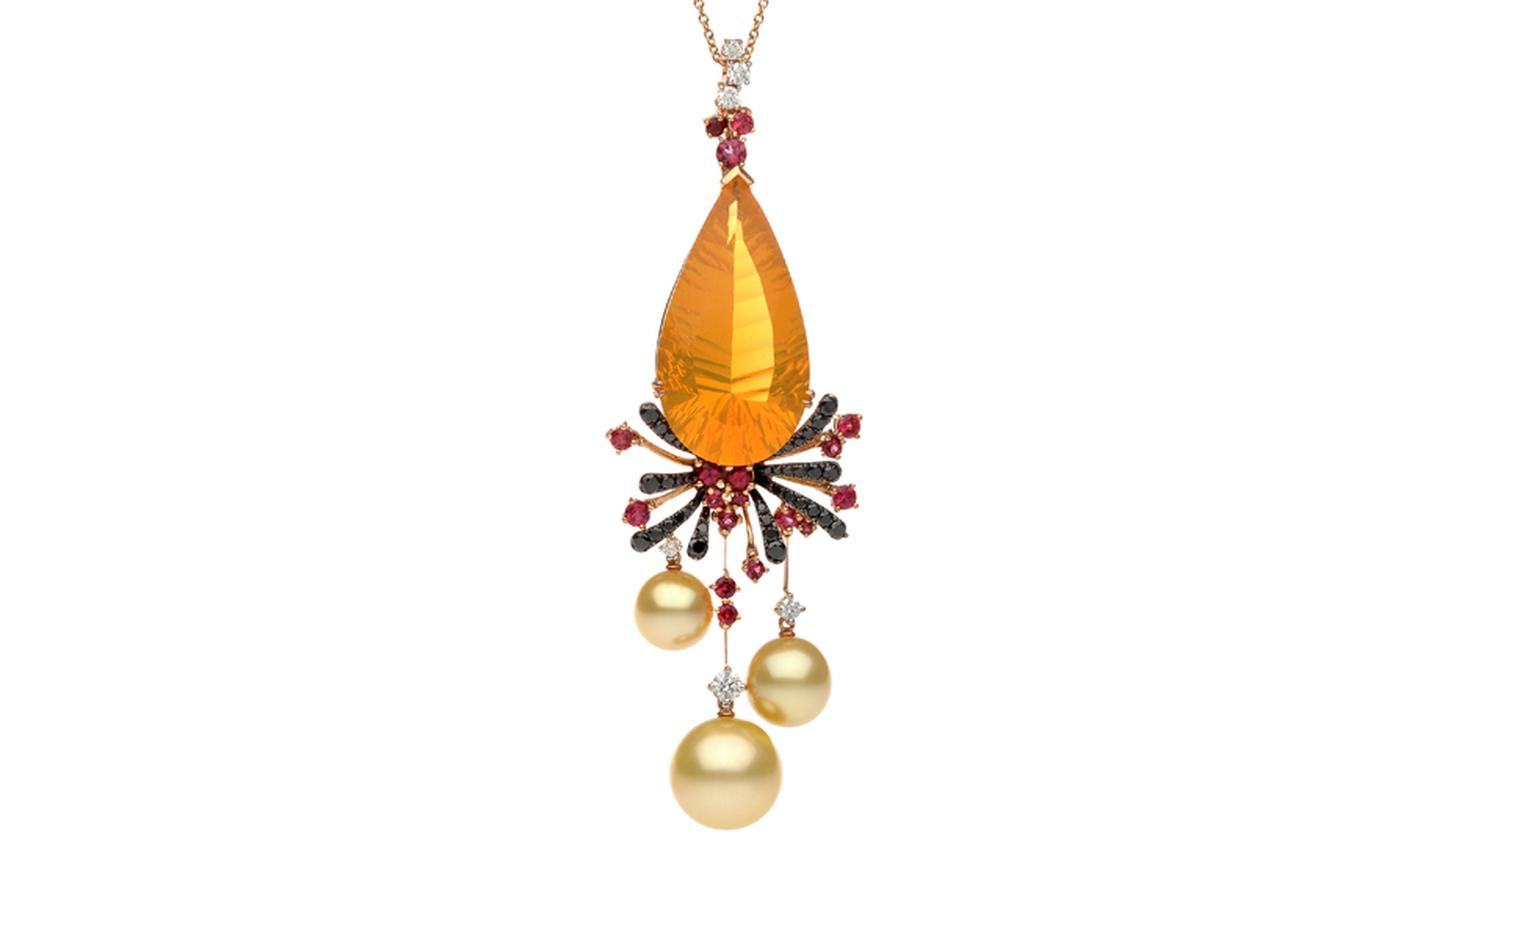 Autore, Fire & Ice Fiery Lava rose gold, South Sea pearl, red spinel, fire opal, and black and white diamond necklace. $65,000 AUD